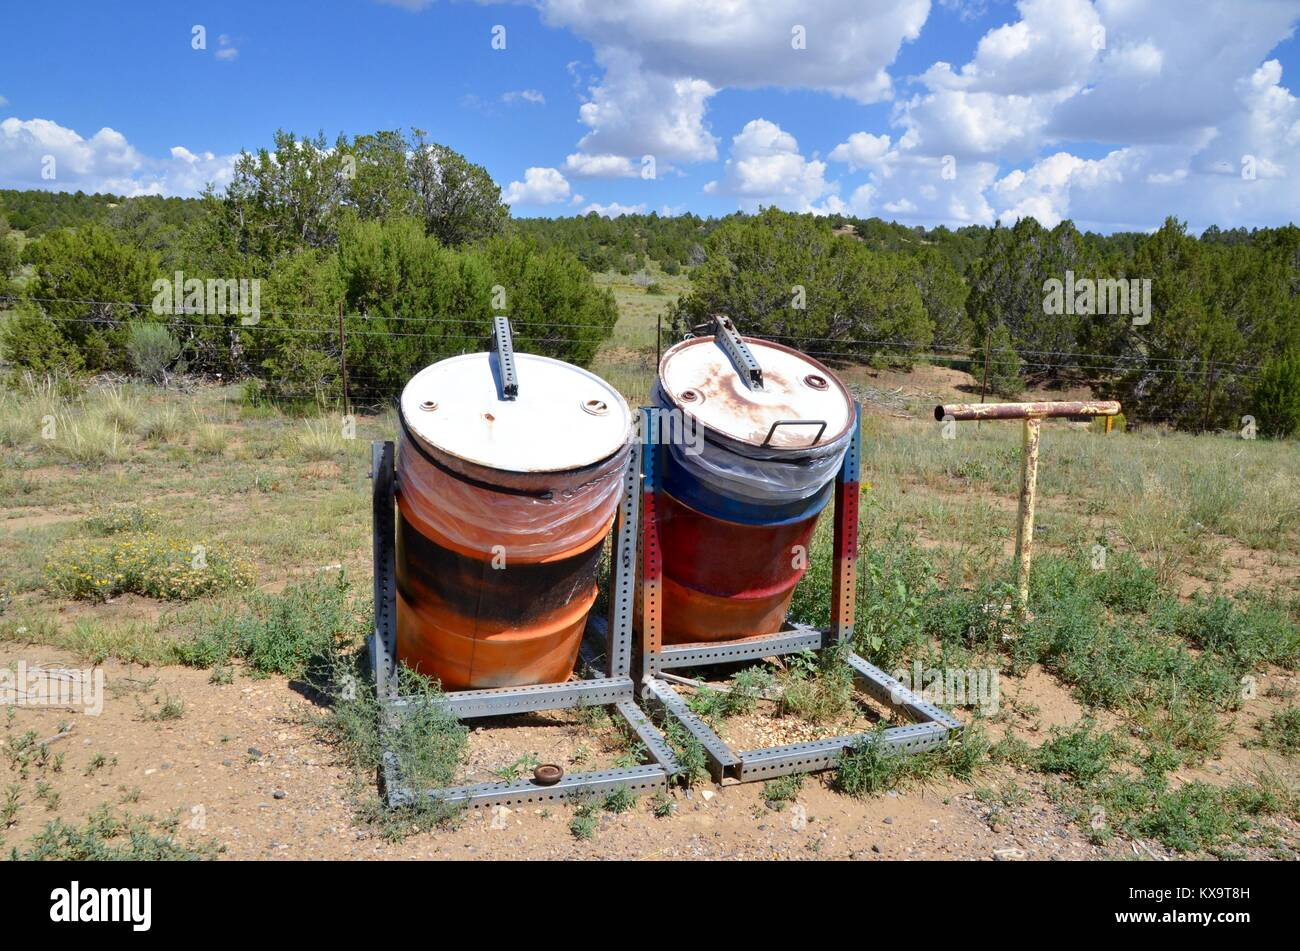 two animal proof trash cans new mexico USA - Stock Image